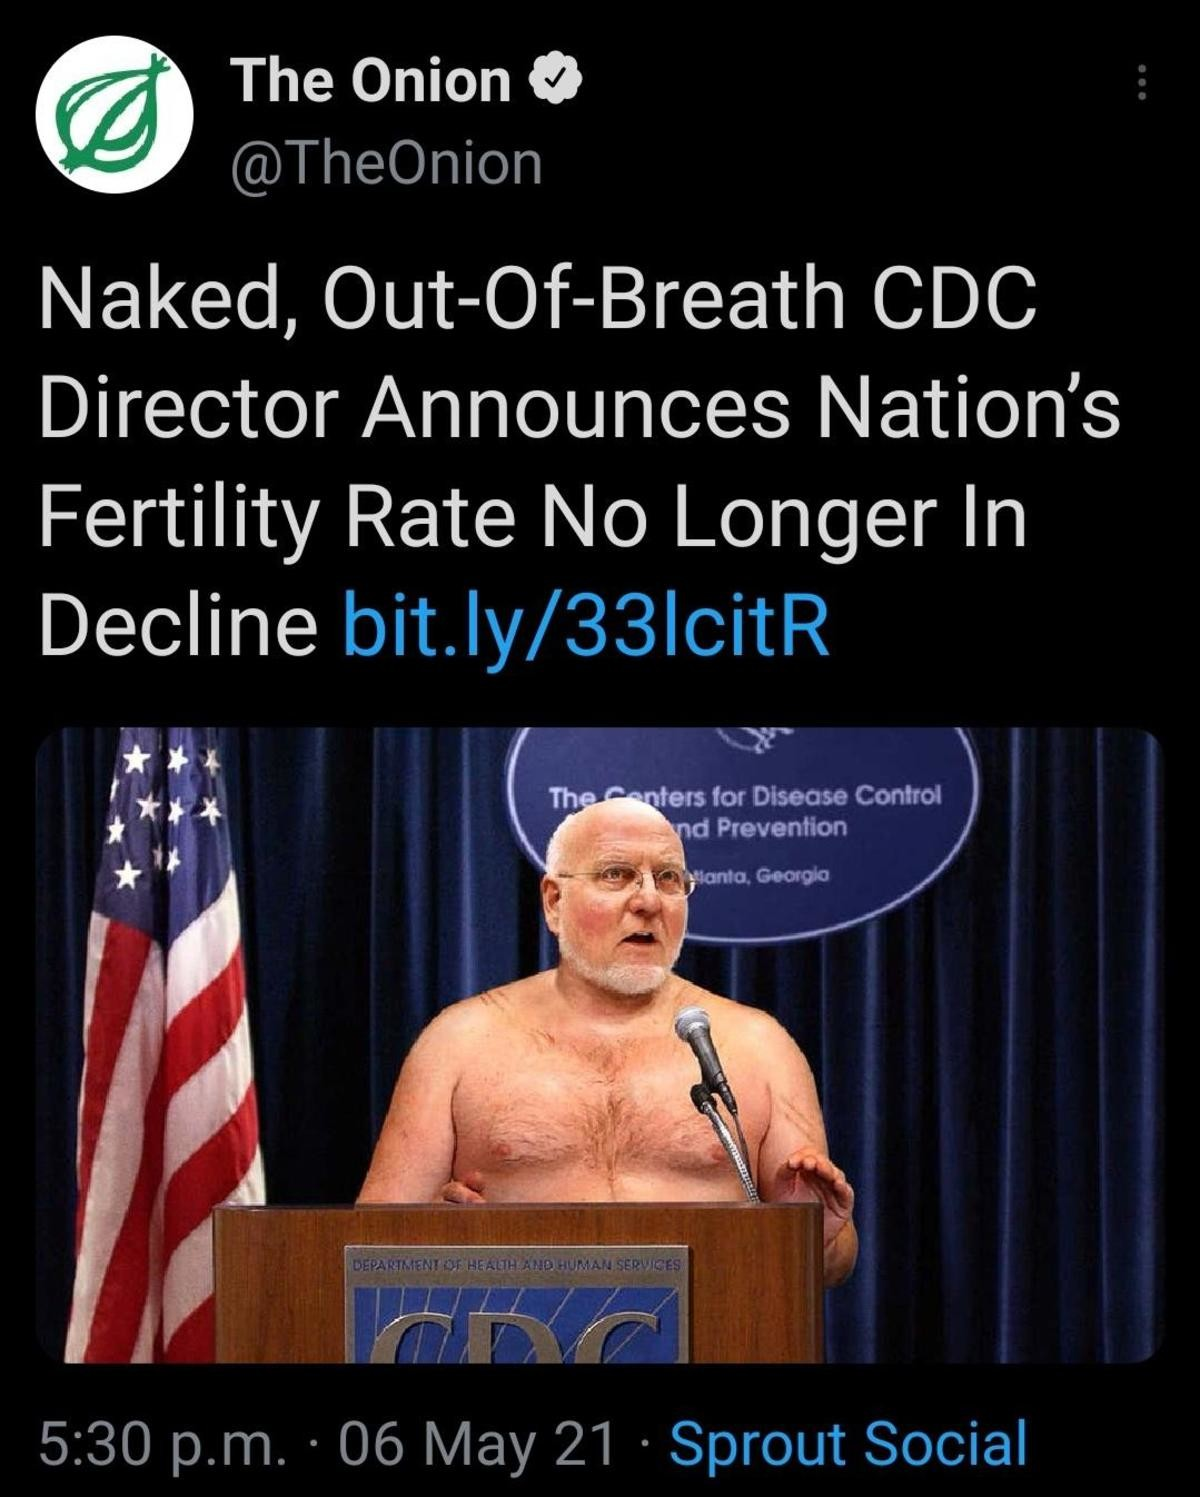 abnormal Pig. .. In case yall were genuinely curious on why the fertility rate in the West is going down its cause of all the we do -lack of exercise -high stress -poor diet and